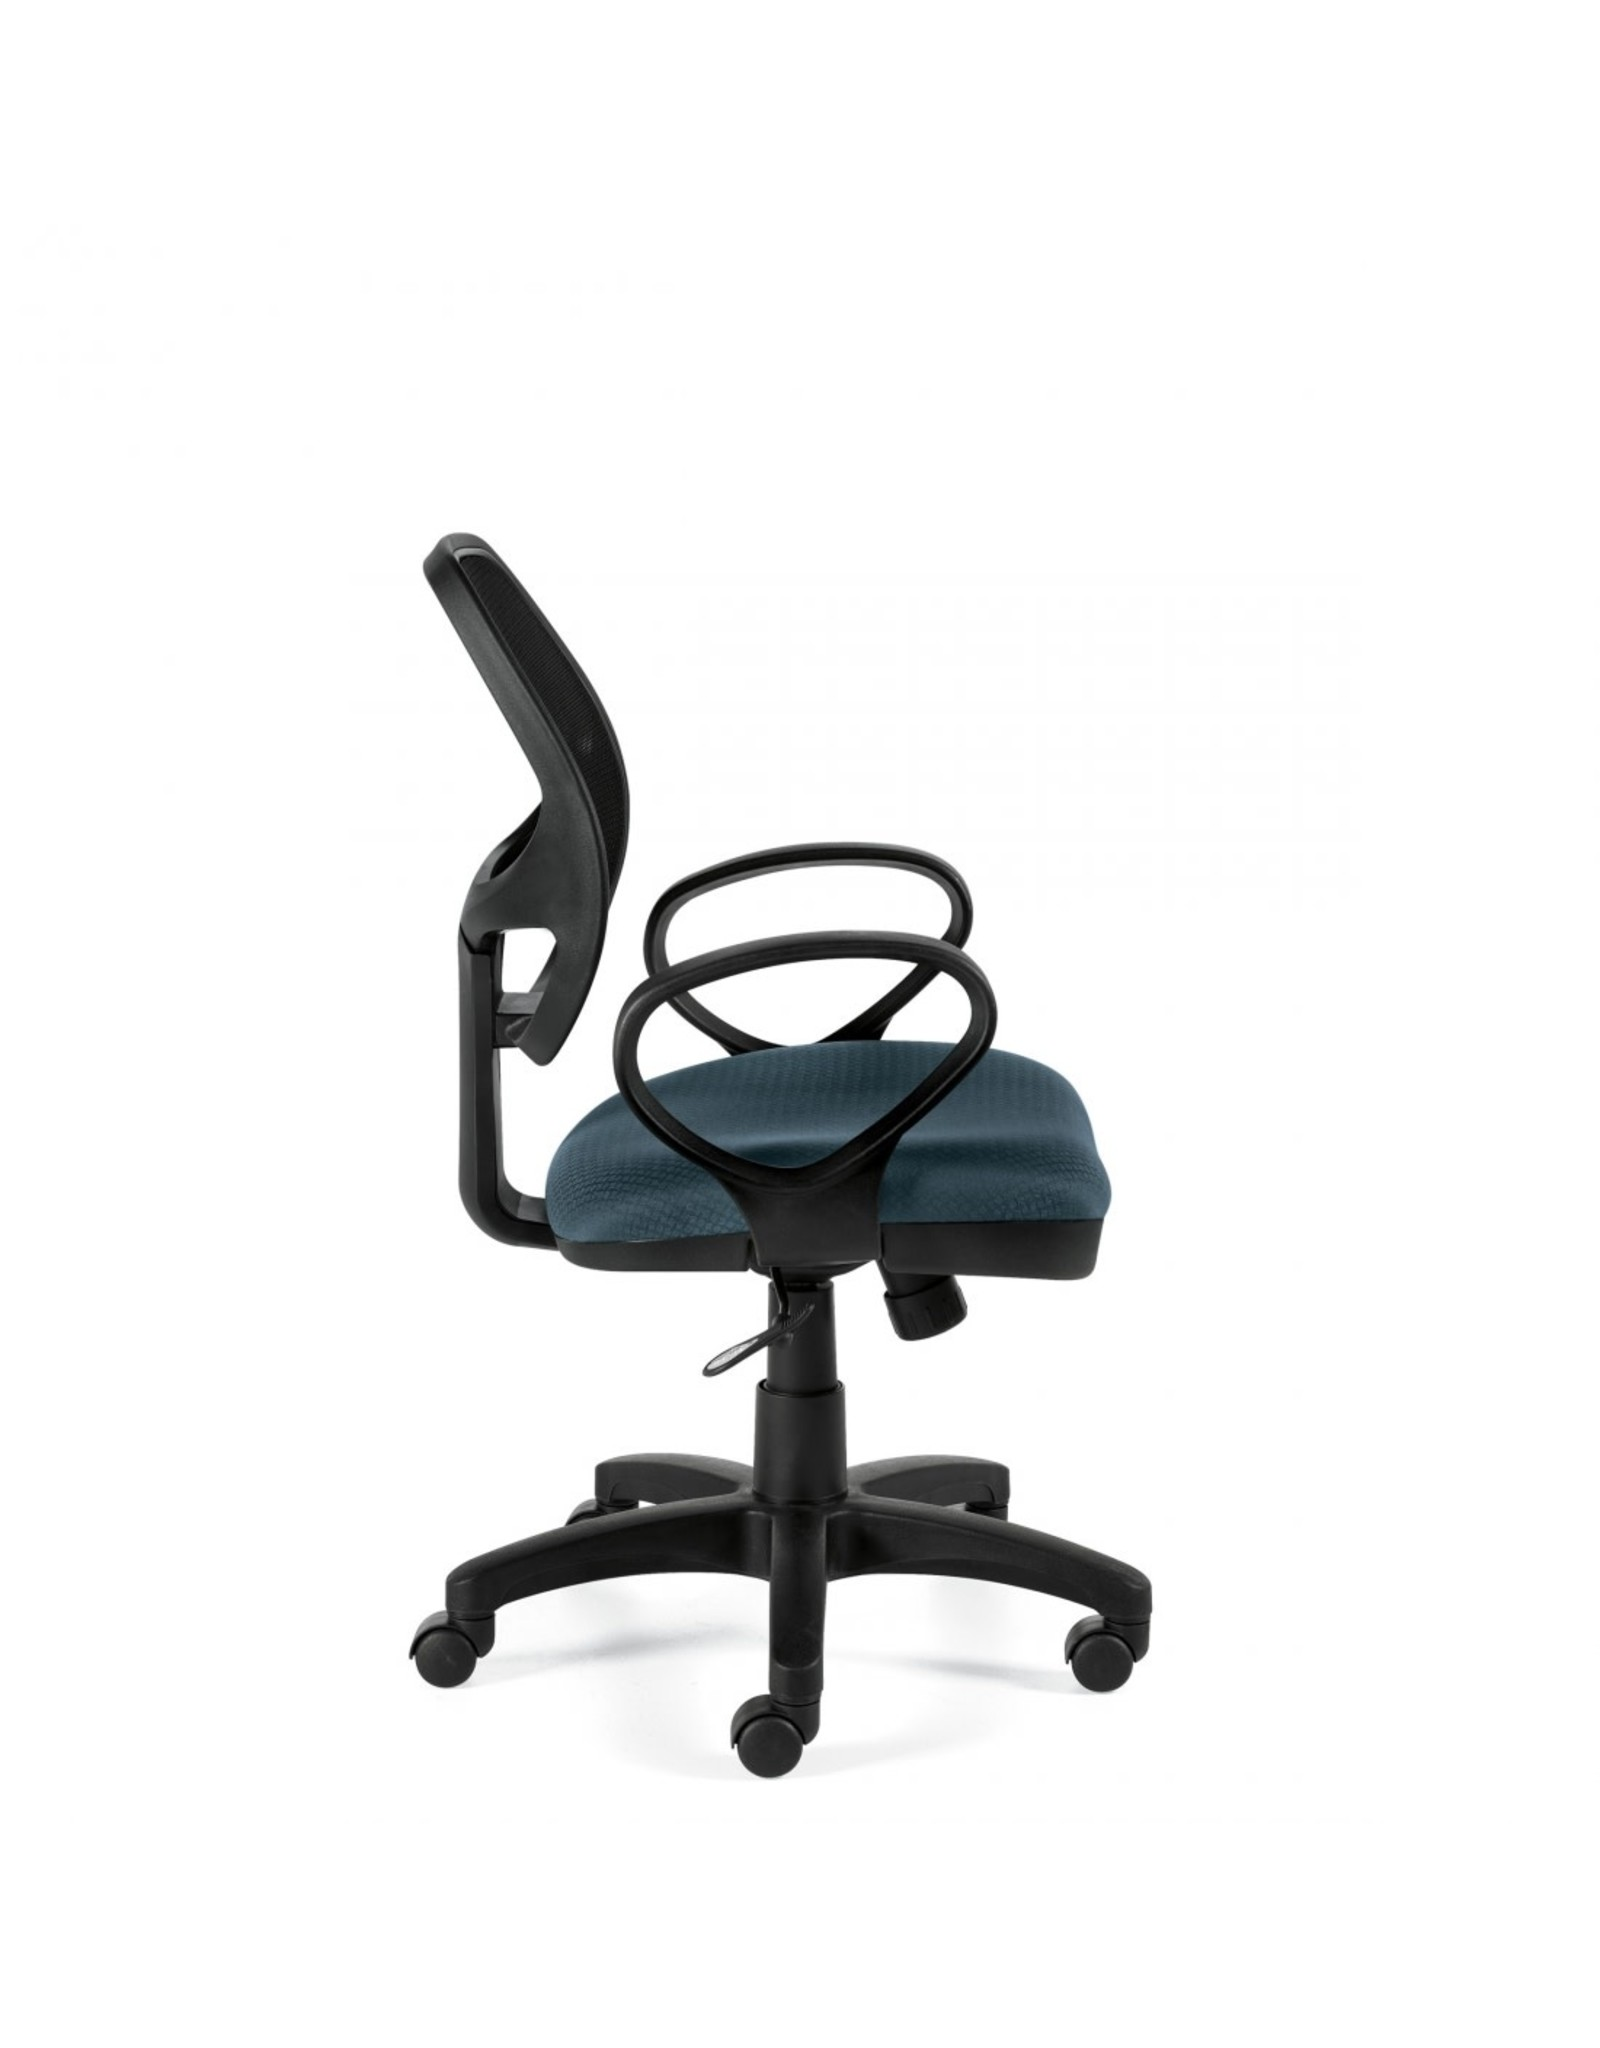 Offices to Go Chair - Offices to Go - Geo - Low Mesh Back Tilter - Black